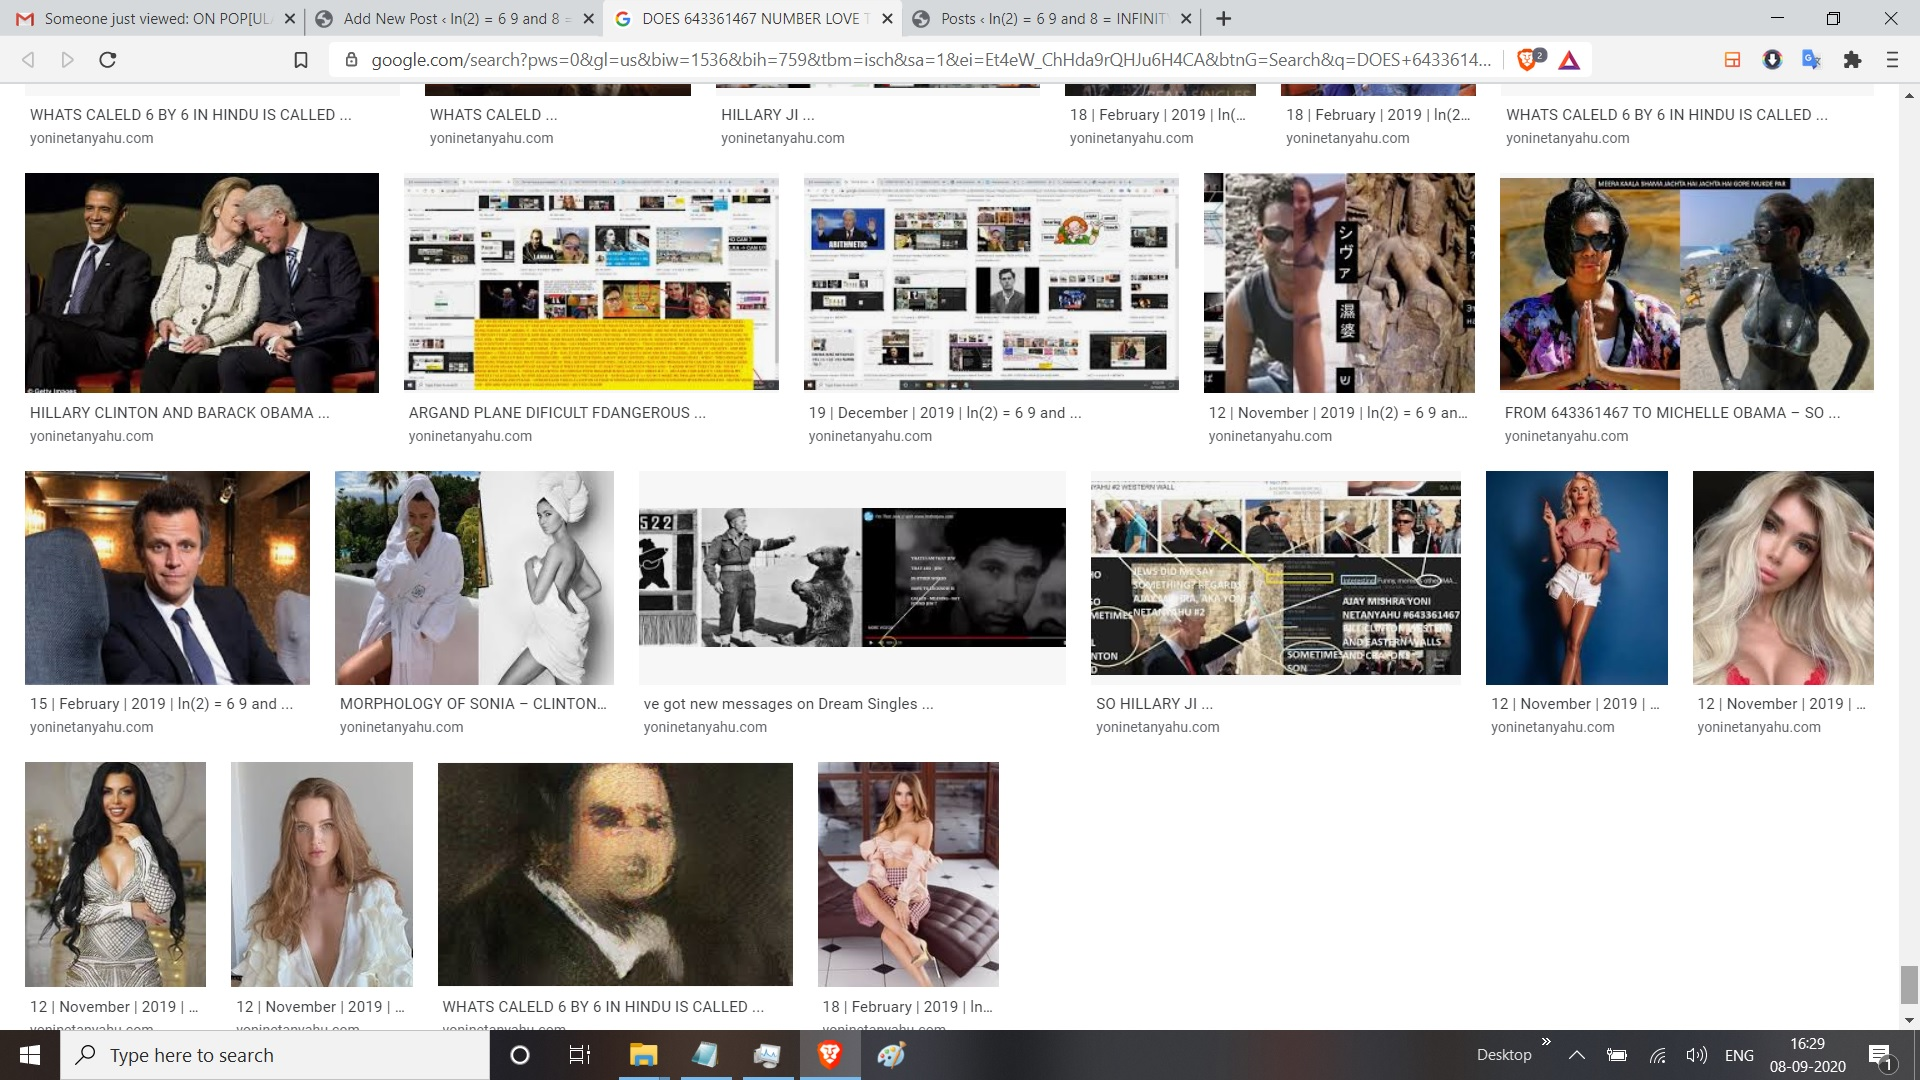 """3:50 PM (39 minutes ago) to me   Someone just viewed: """"ON POP[ULAR DEMAND - BECAUSE YOU PEOPLE ALWASY ASK AND CLICK MY BLOG POST CERMONIALLY - WHAT IS UNCONTIONAL OR TRUE LOVE - HERE IS THE ANSWR FROM GOOGLE """" People on thread: Yoni Netanyahu Olga Blog Post By Email, Olga Google Blogger Post By Email Device: Unknown Device Location: Unknown"""